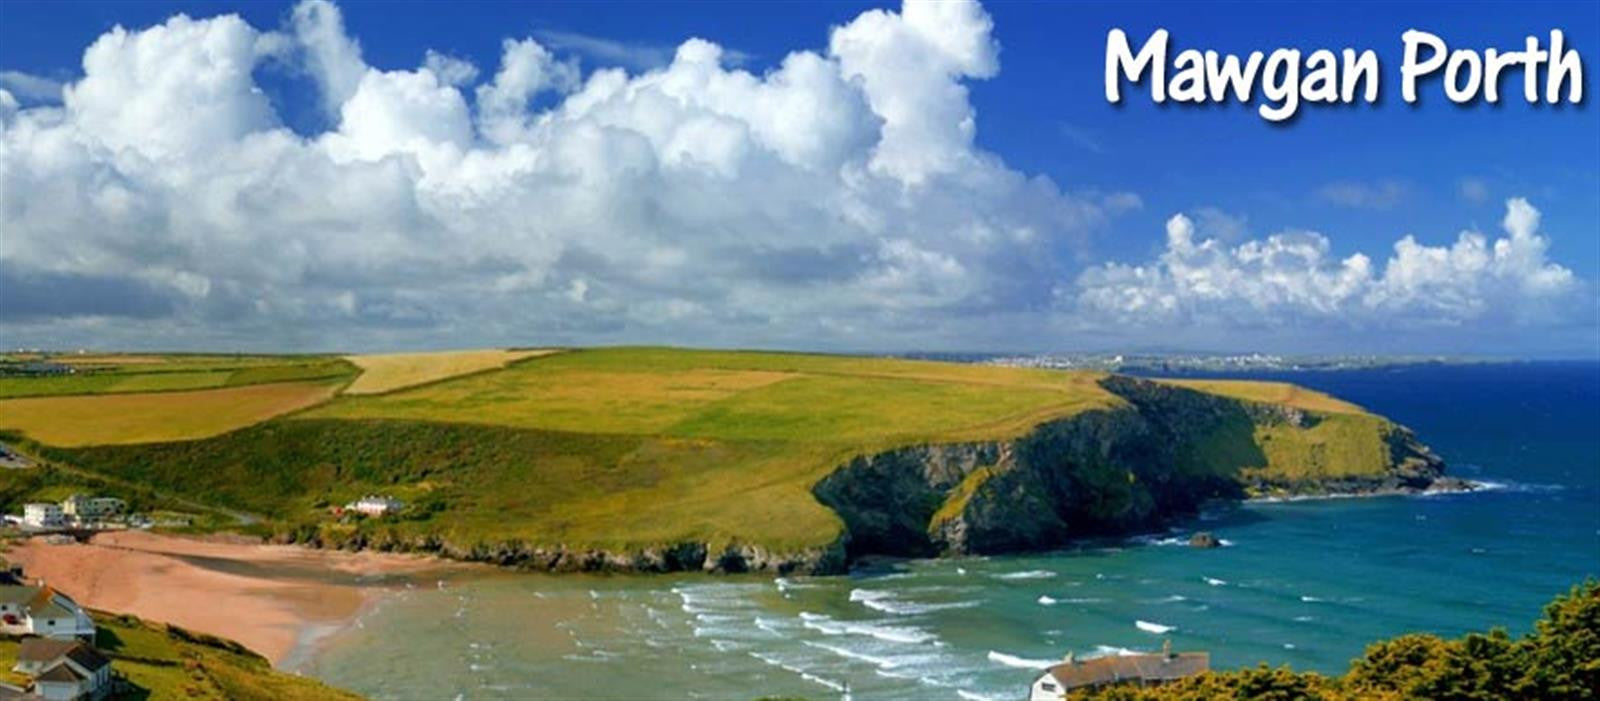 Mawgan Porth - Postcard Image of the bay